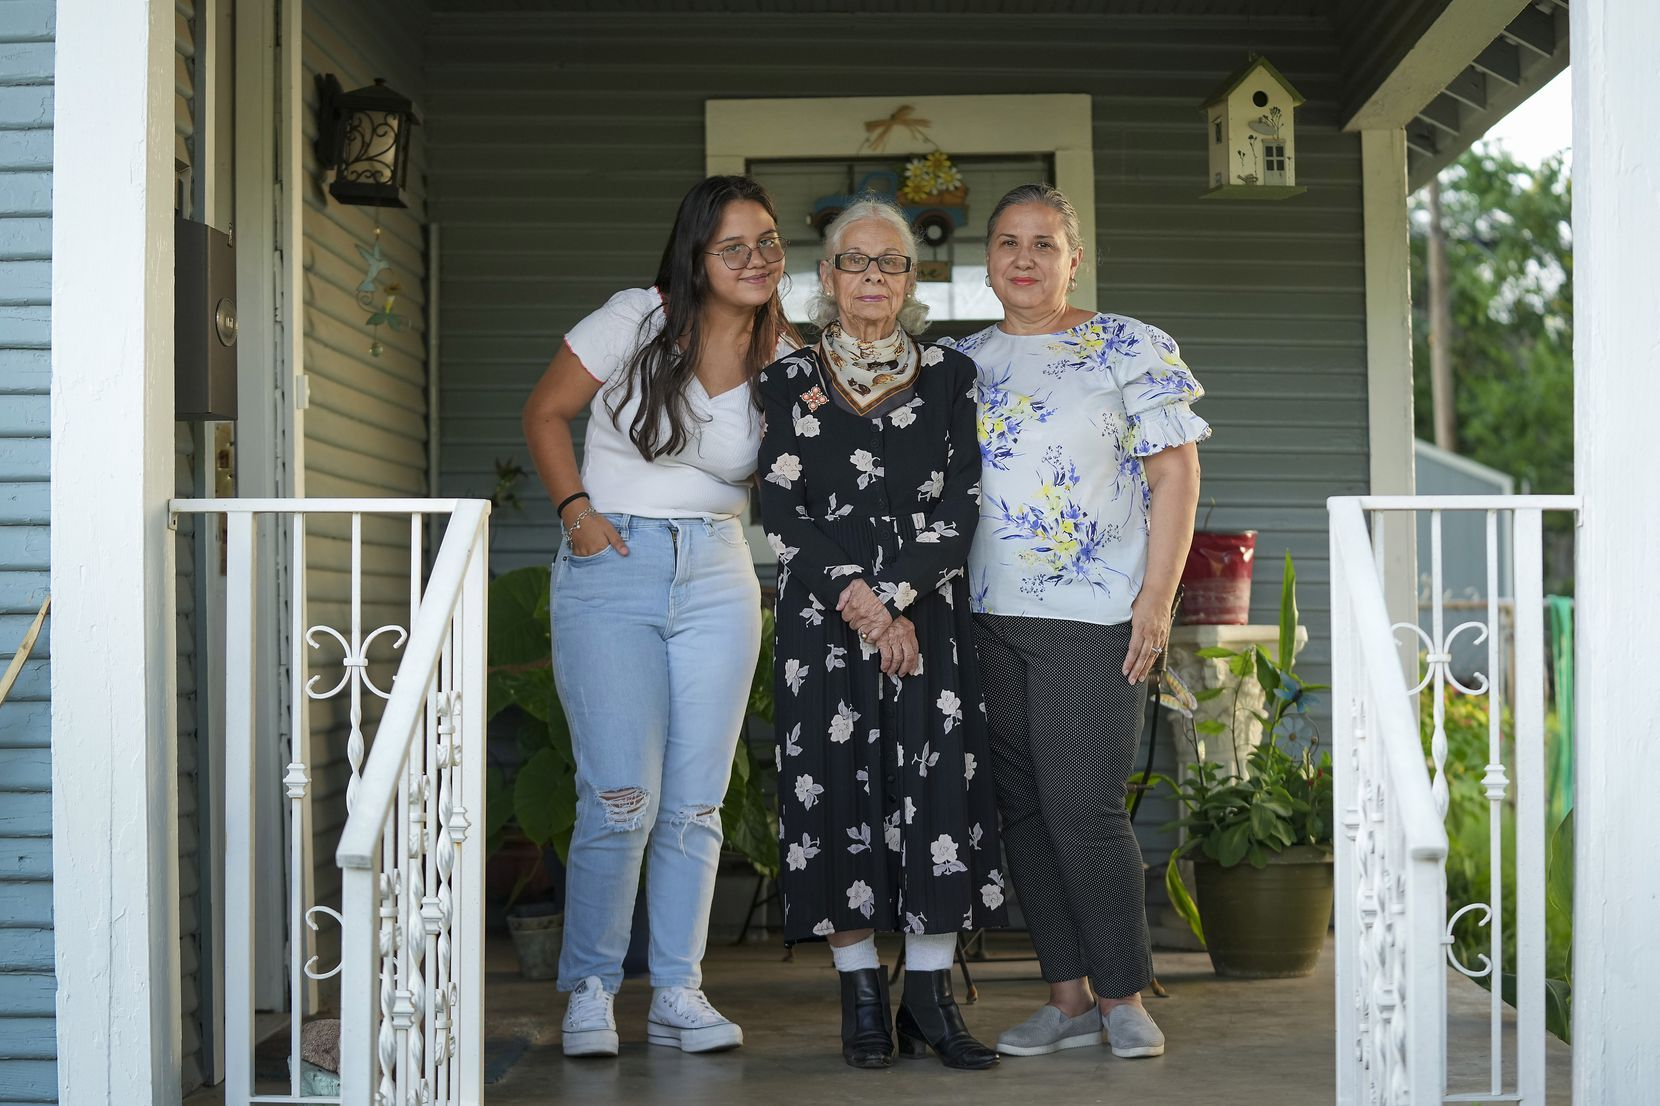 Alejandra Vila, 57, (right) photographed with her mother Olga Umana, 89, (center) and daughter Katherina De Leon, 14, on Thursday, July 15, 2021, in Dallas. Alejandra Vila and Olga Umana were among the first to be vaccinated at Fair Park on the first day of Dallas County's Fair Park mega vaccine site. Though it didn't happen at the Fair Park site, De Leon became the third generation of women in the family to be vaccinated when children over 12 were added in May to those Texans eligible for the shot. (Smiley N. Pool/The Dallas Morning News)